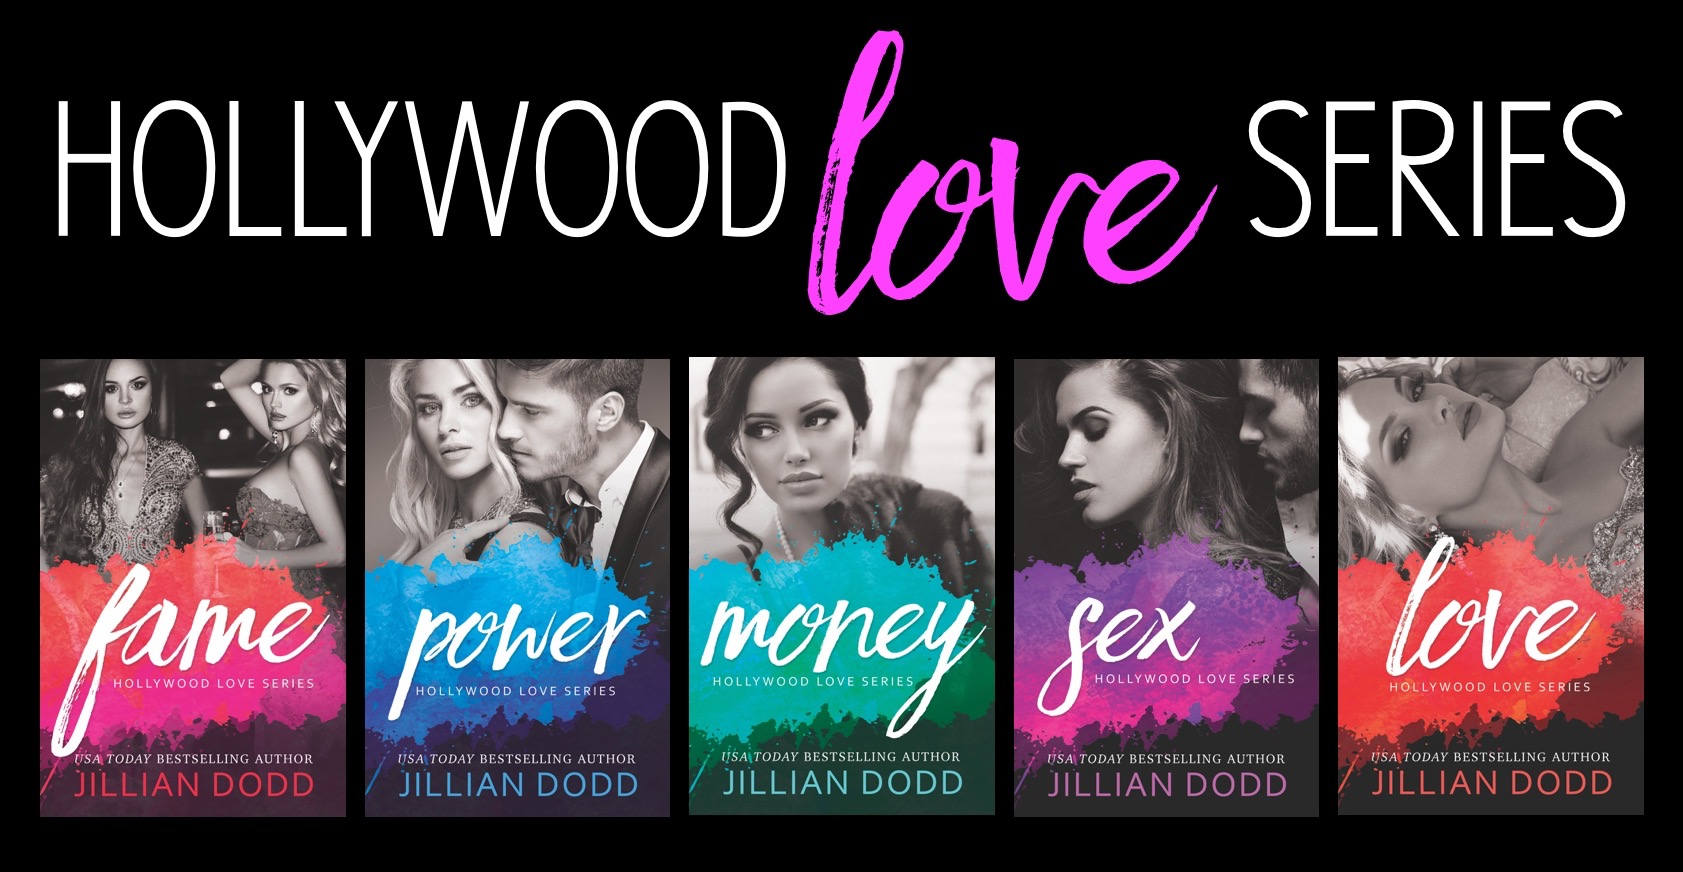 Hollywood love Series